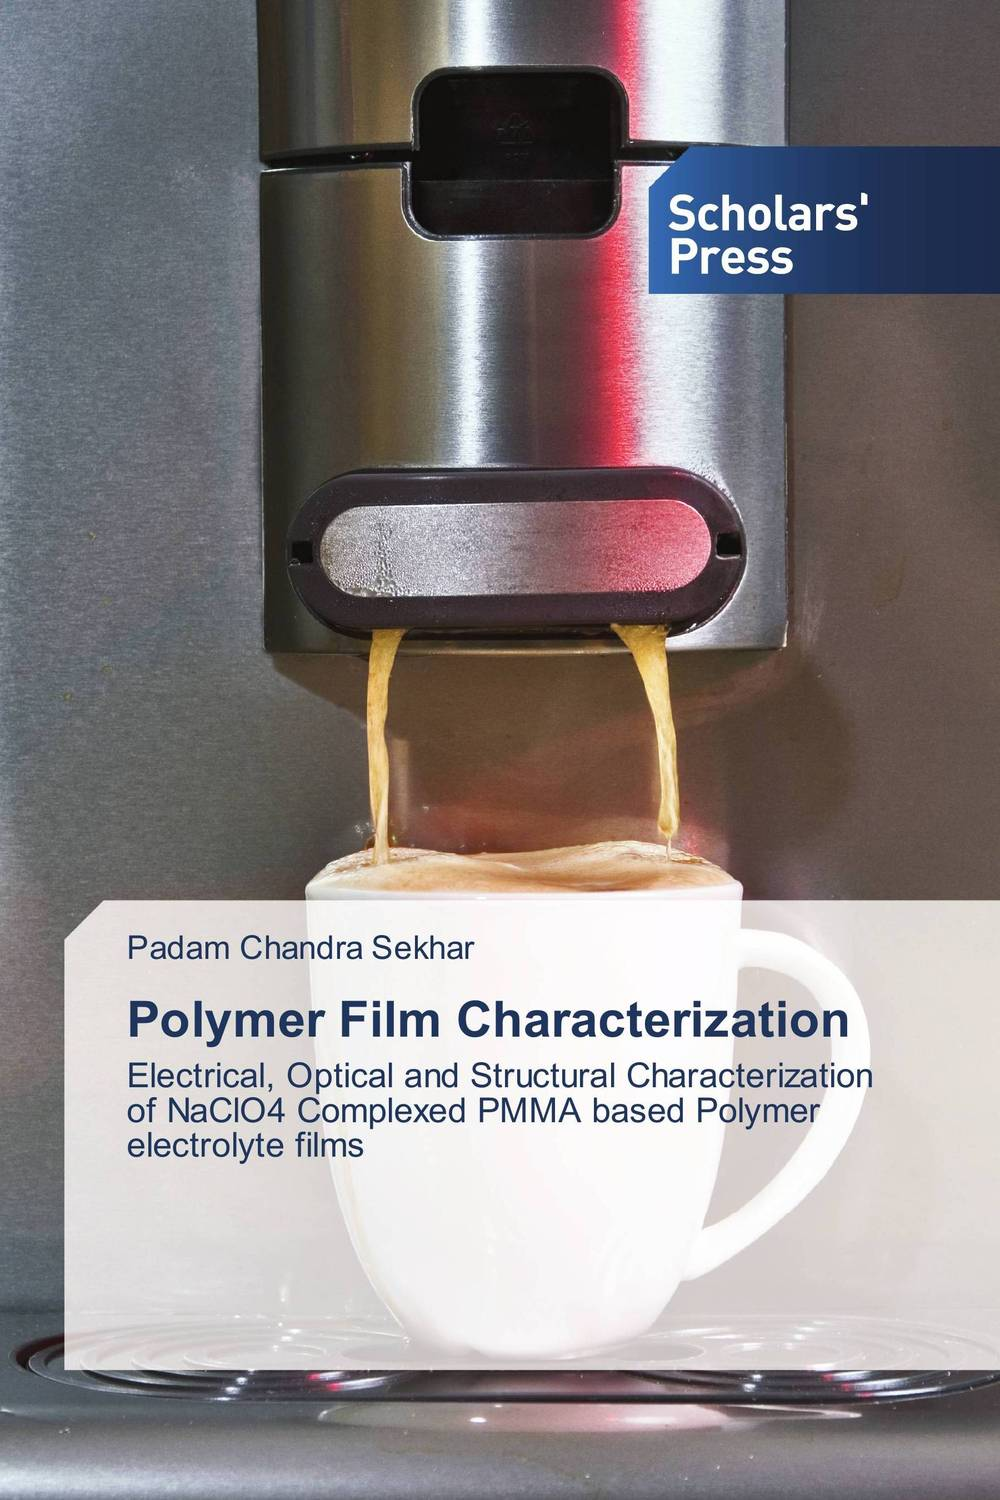 Polymer Film Characterization patrick w jordan how to make brilliant stuff that people love and make big money out of it